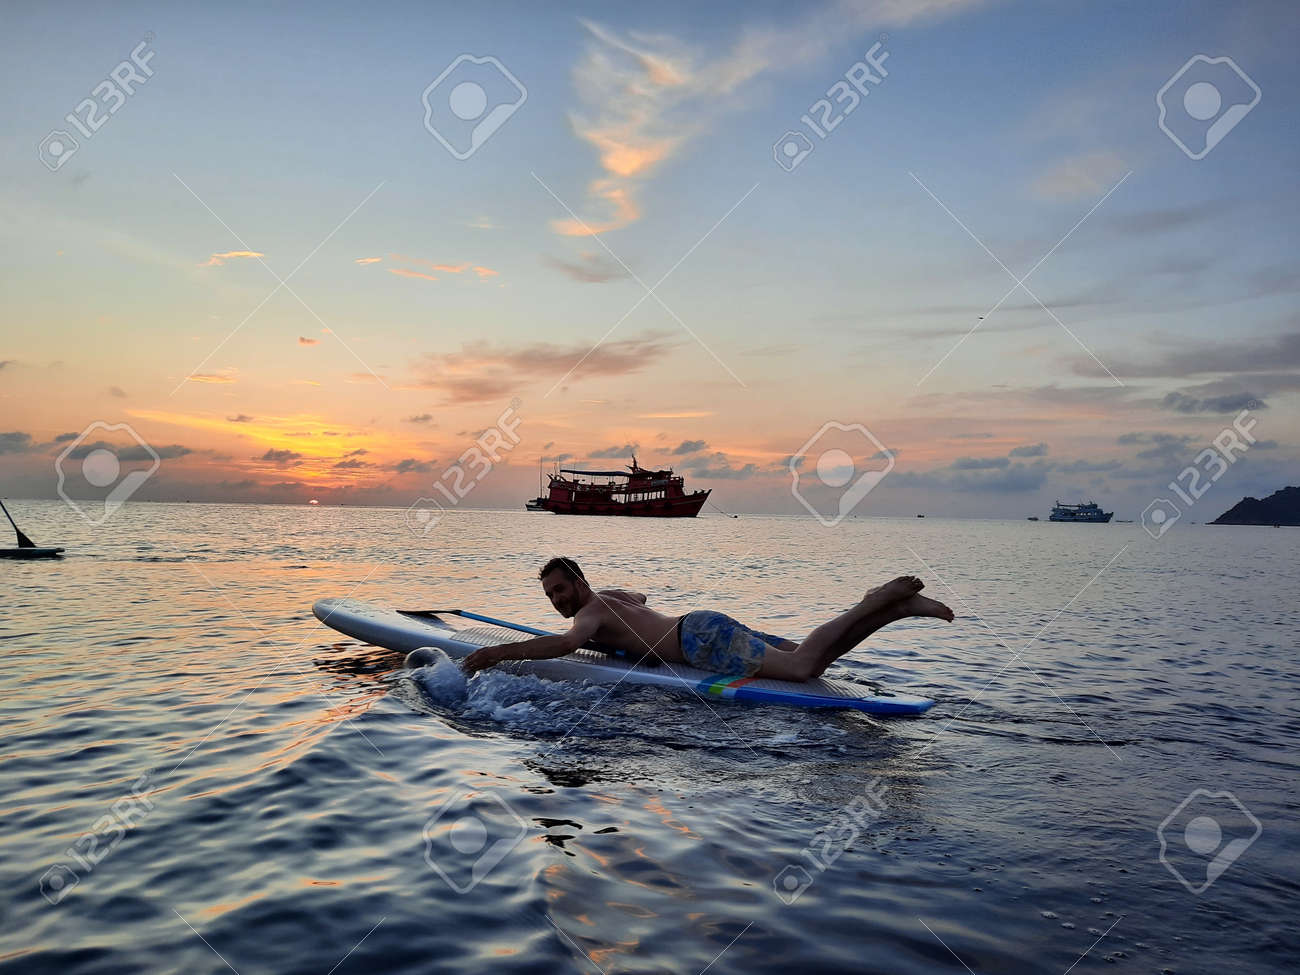 on a stand up paddle board, young man 34 years old, German, lies on a board on the ocean in Thailand, on the island Koh Tao at sunset - 169664552